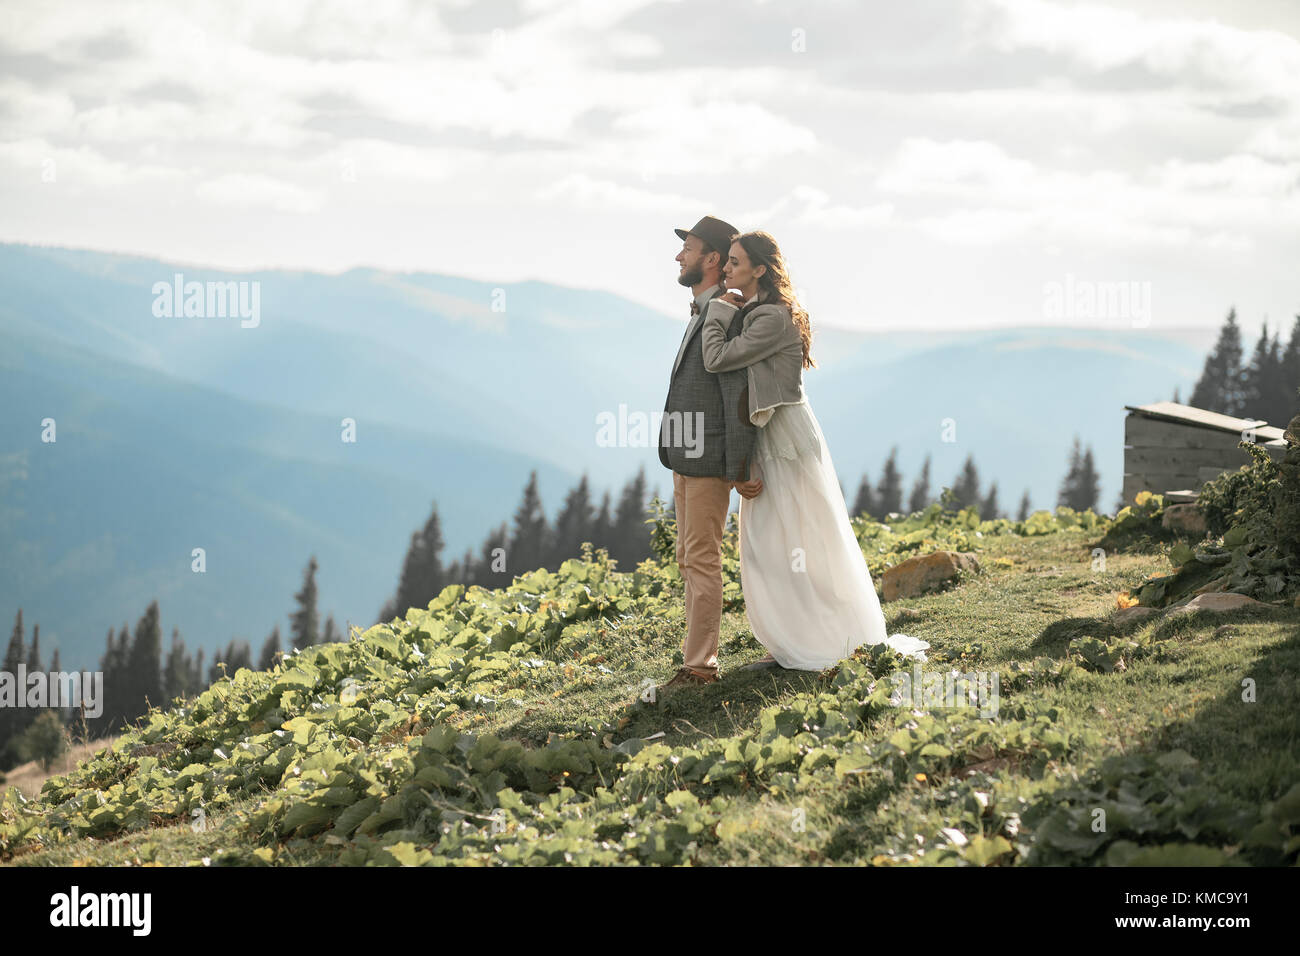 Newlyweds stand, smile and hug during honeymoon trip in Carpathian mountains. - Stock Image